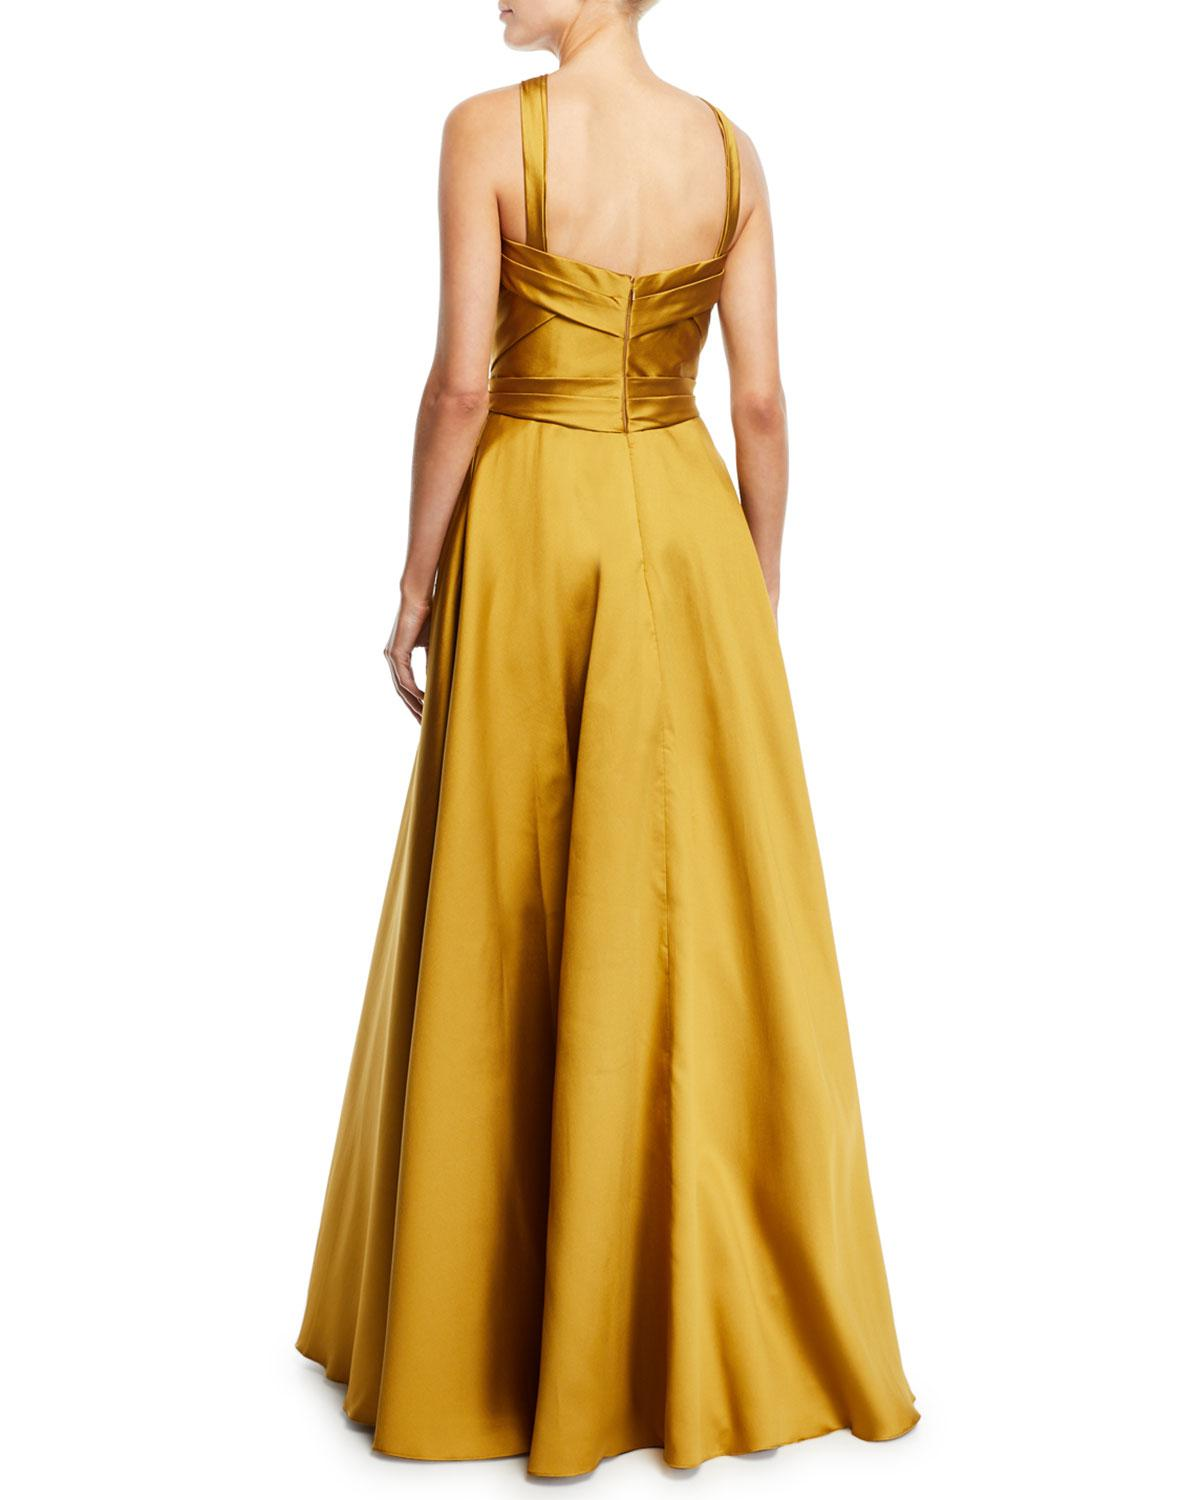 d8870936514e Marchesa notte Crisscross Halter Beaded Ball Gown in Metallic - Lyst